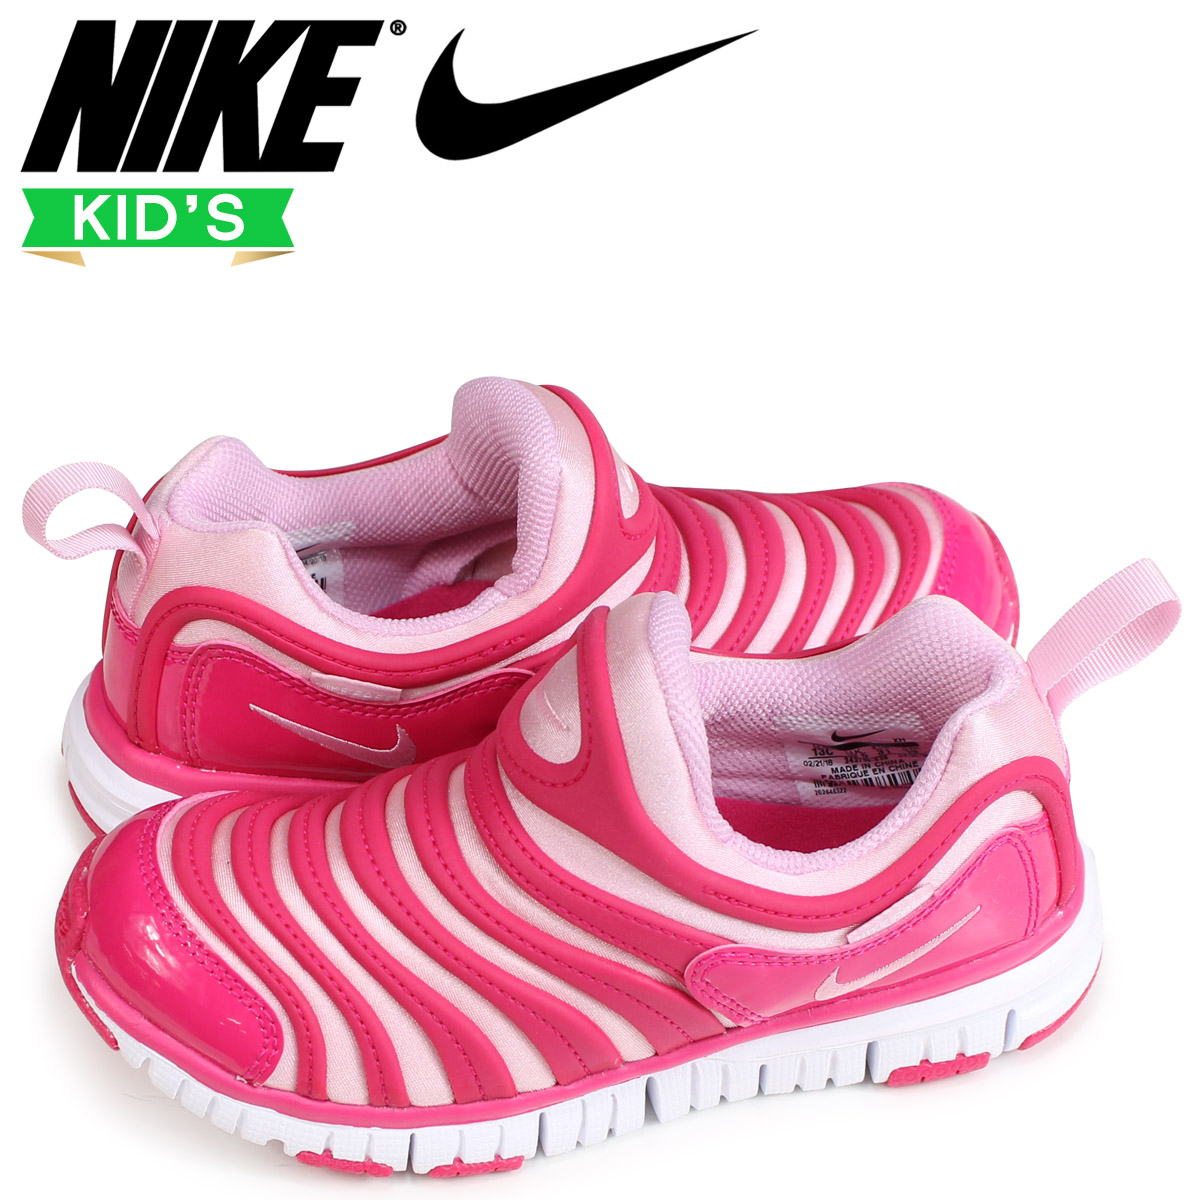 buy online c8a7d ccd87 Nike NIKE dynamo-free kids sneakers DYNAMO FREE PS 343,738-626 pink load  planned Shinnyu load in reservation product 720 containing